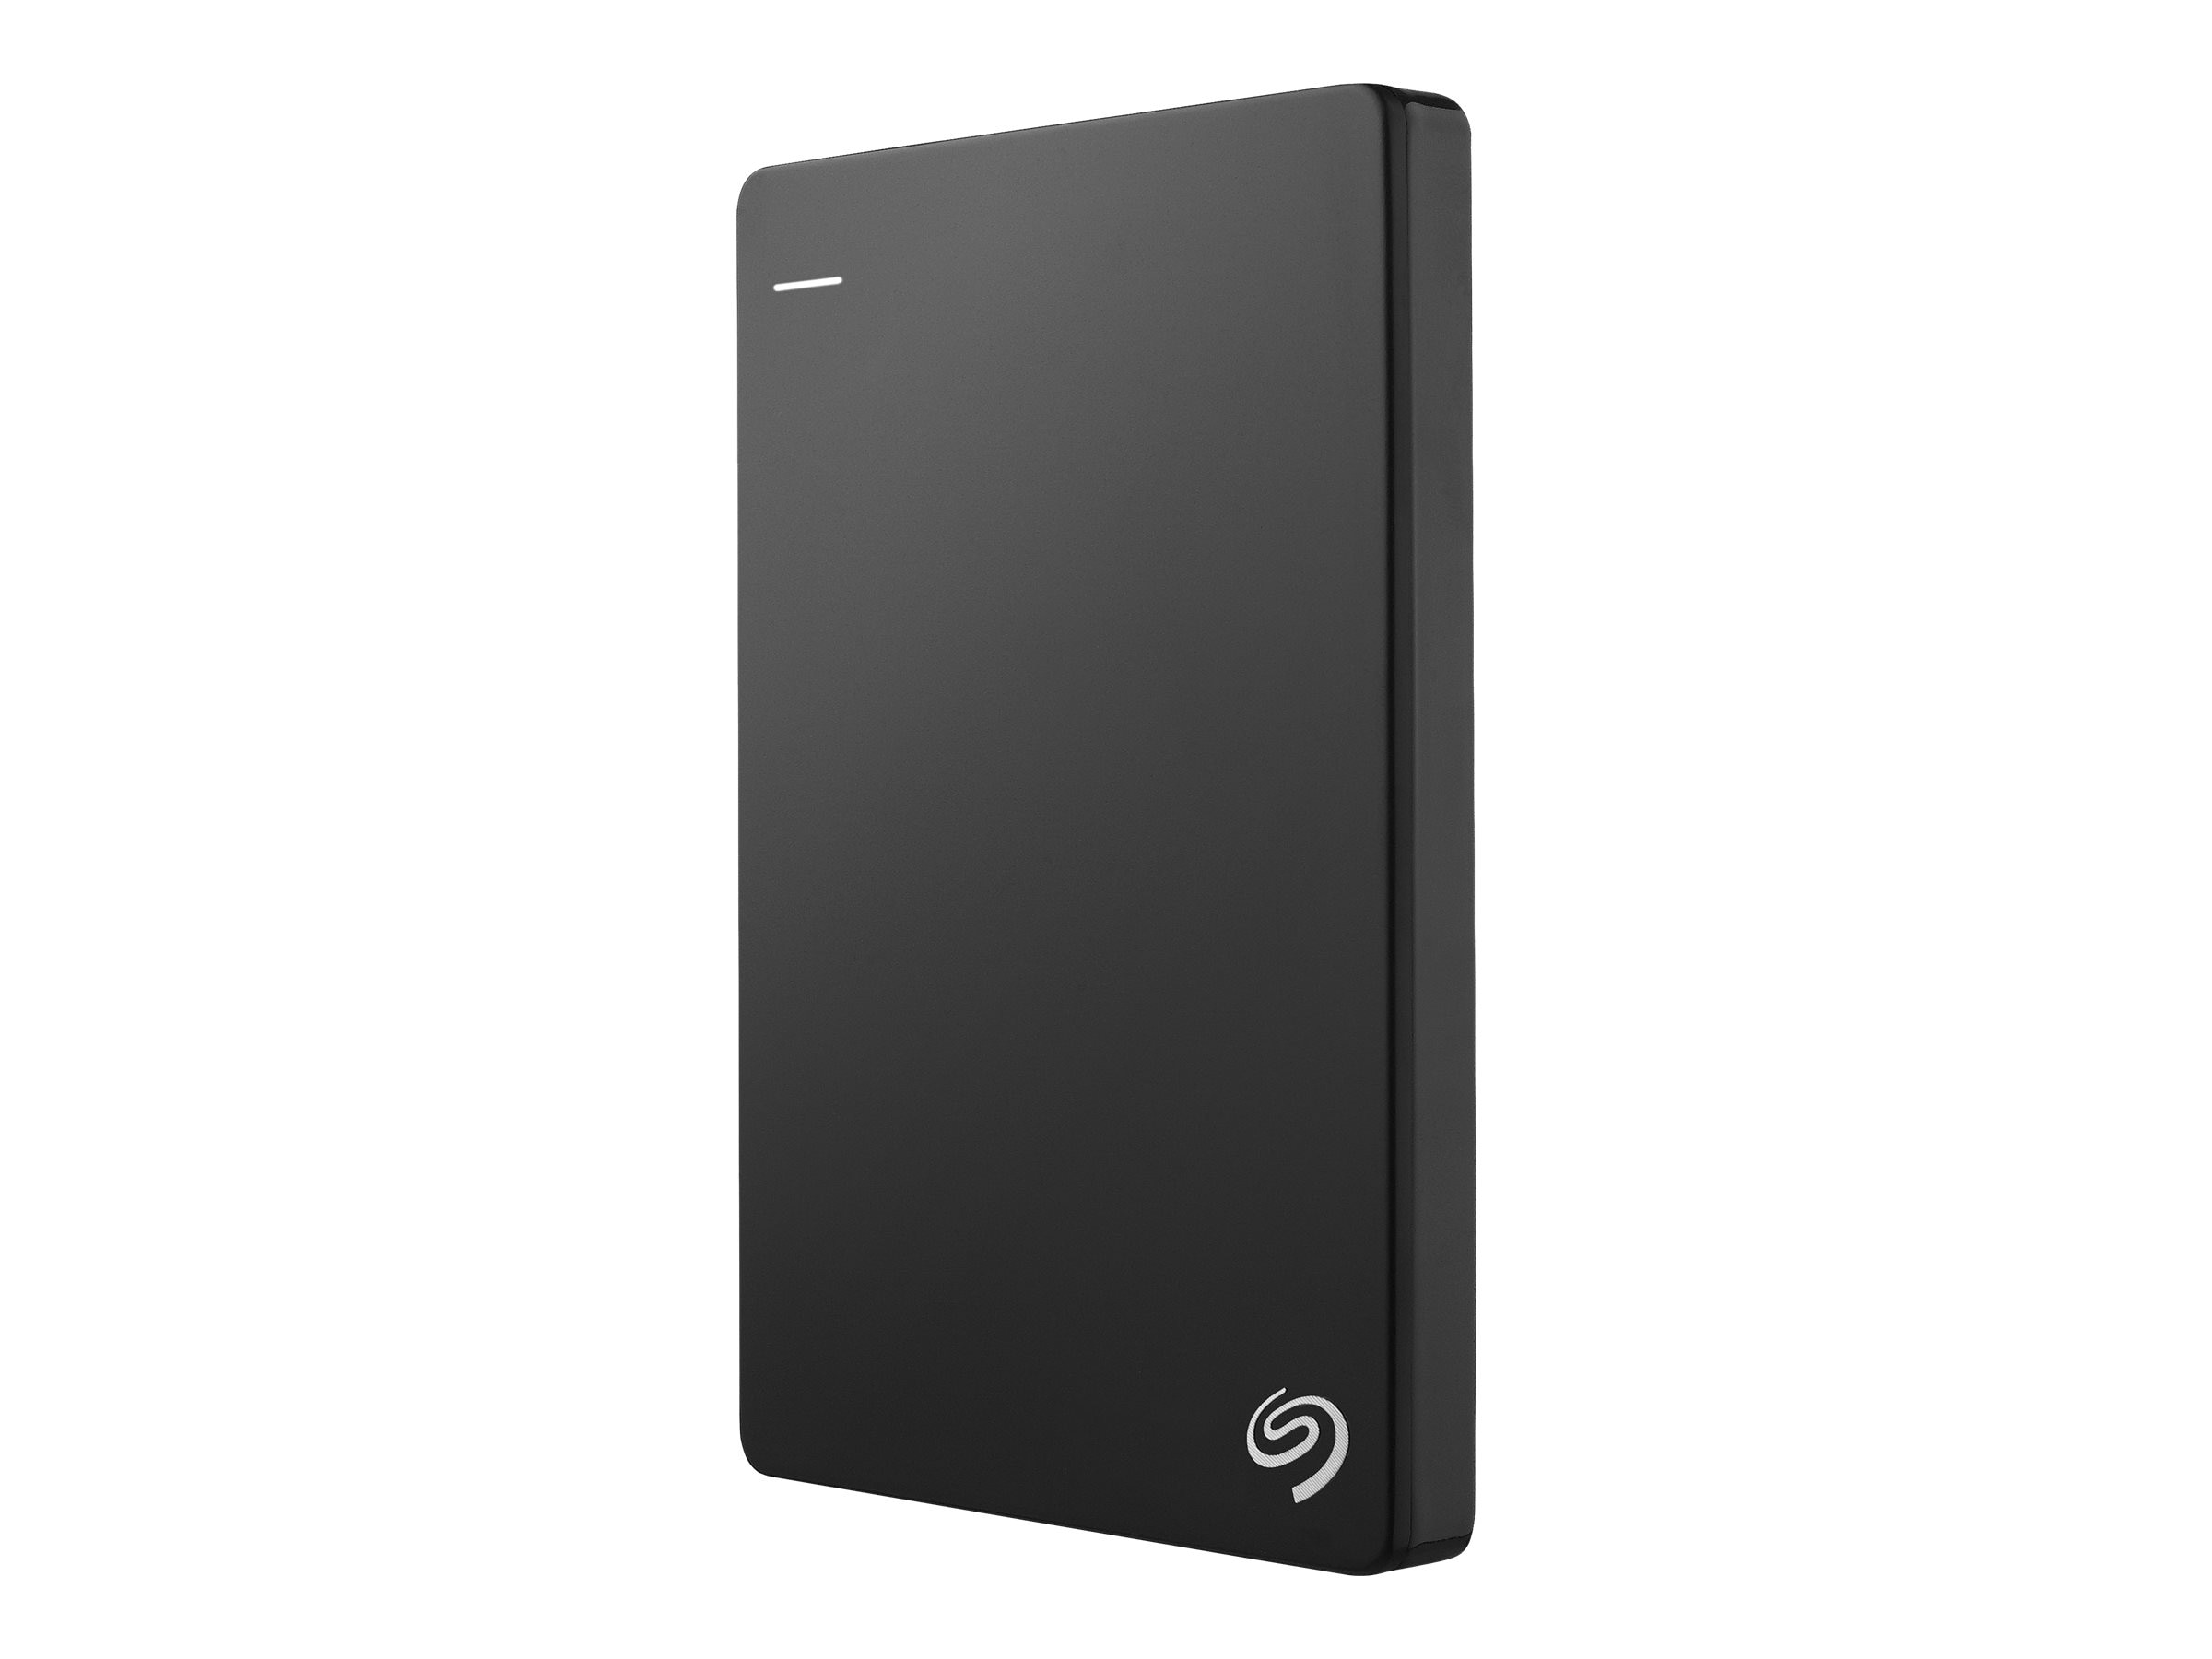 Seagate 2TB Backup Plus USB 3.0 Portable Hard Drive - Black